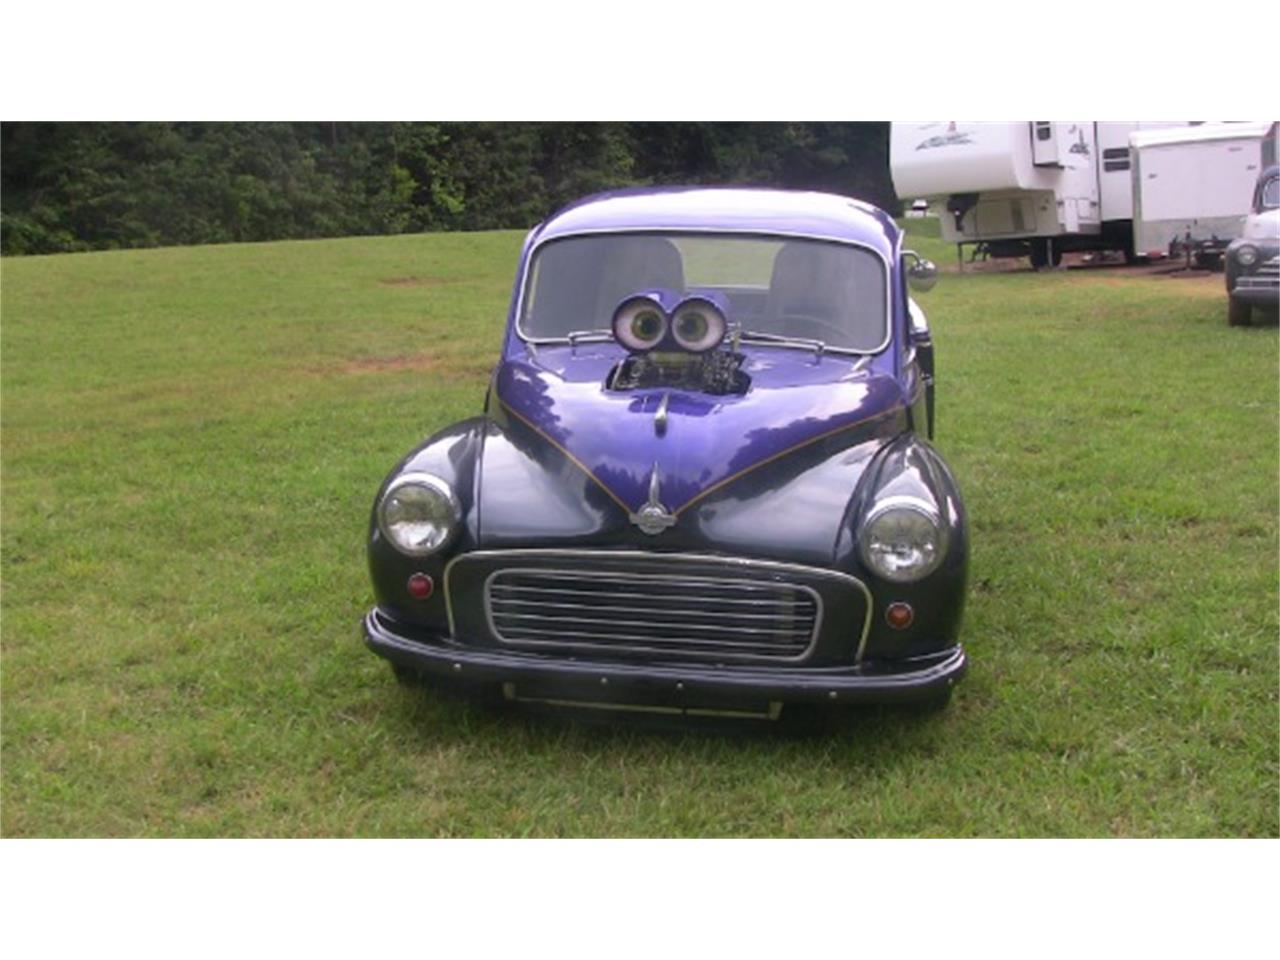 Large Picture of Classic 1960 Morris Minor located in North Carolina Offered by Classic Lady Motors - K944